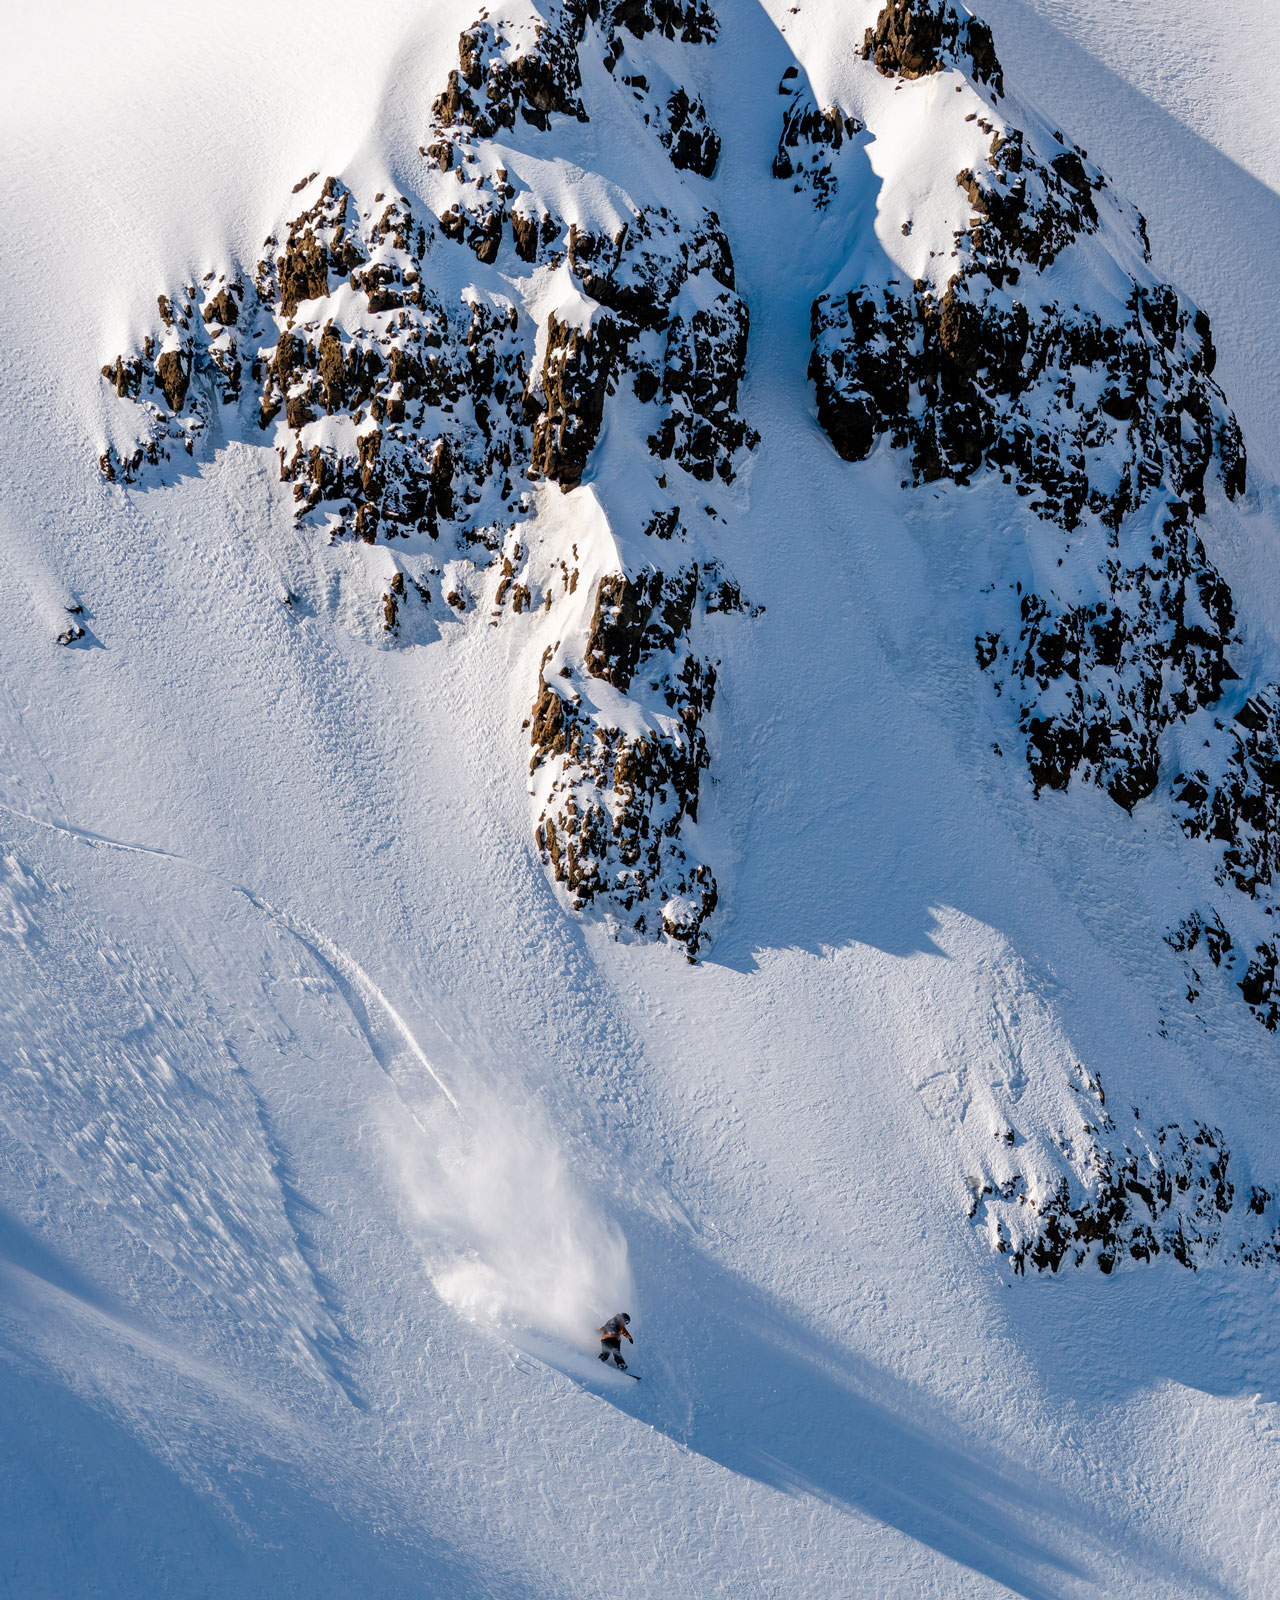 Chile or Argentina? Whatever the country the snow was good. Photo Courtesy: Ben Girardi - Adventure in Argentina